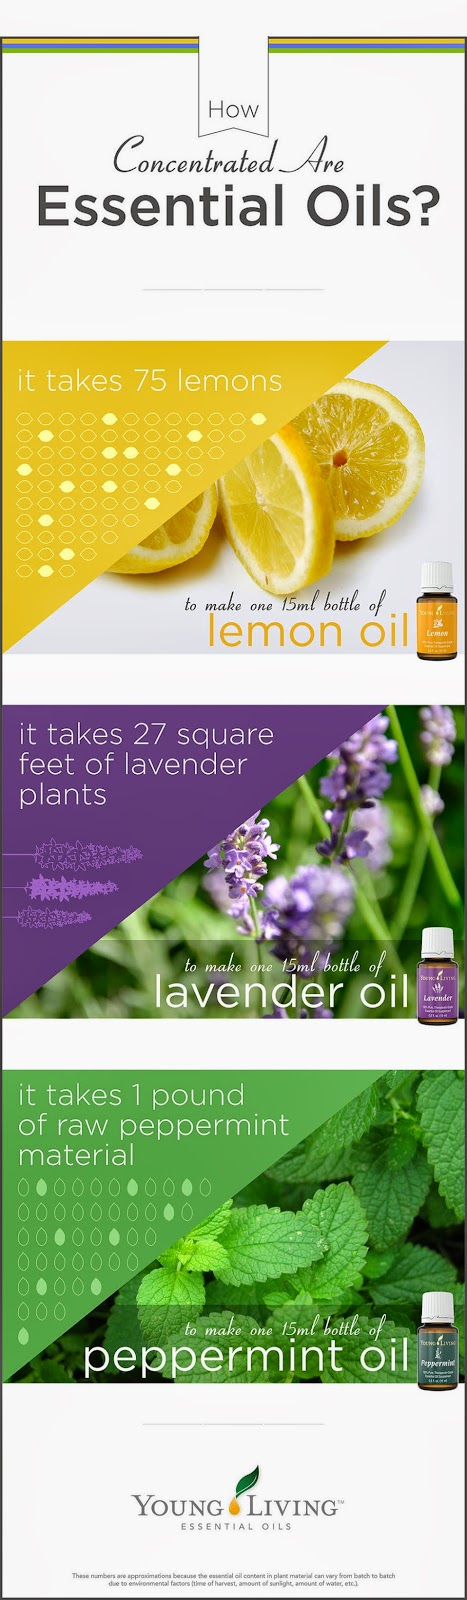 Young Living how concentrated are oils